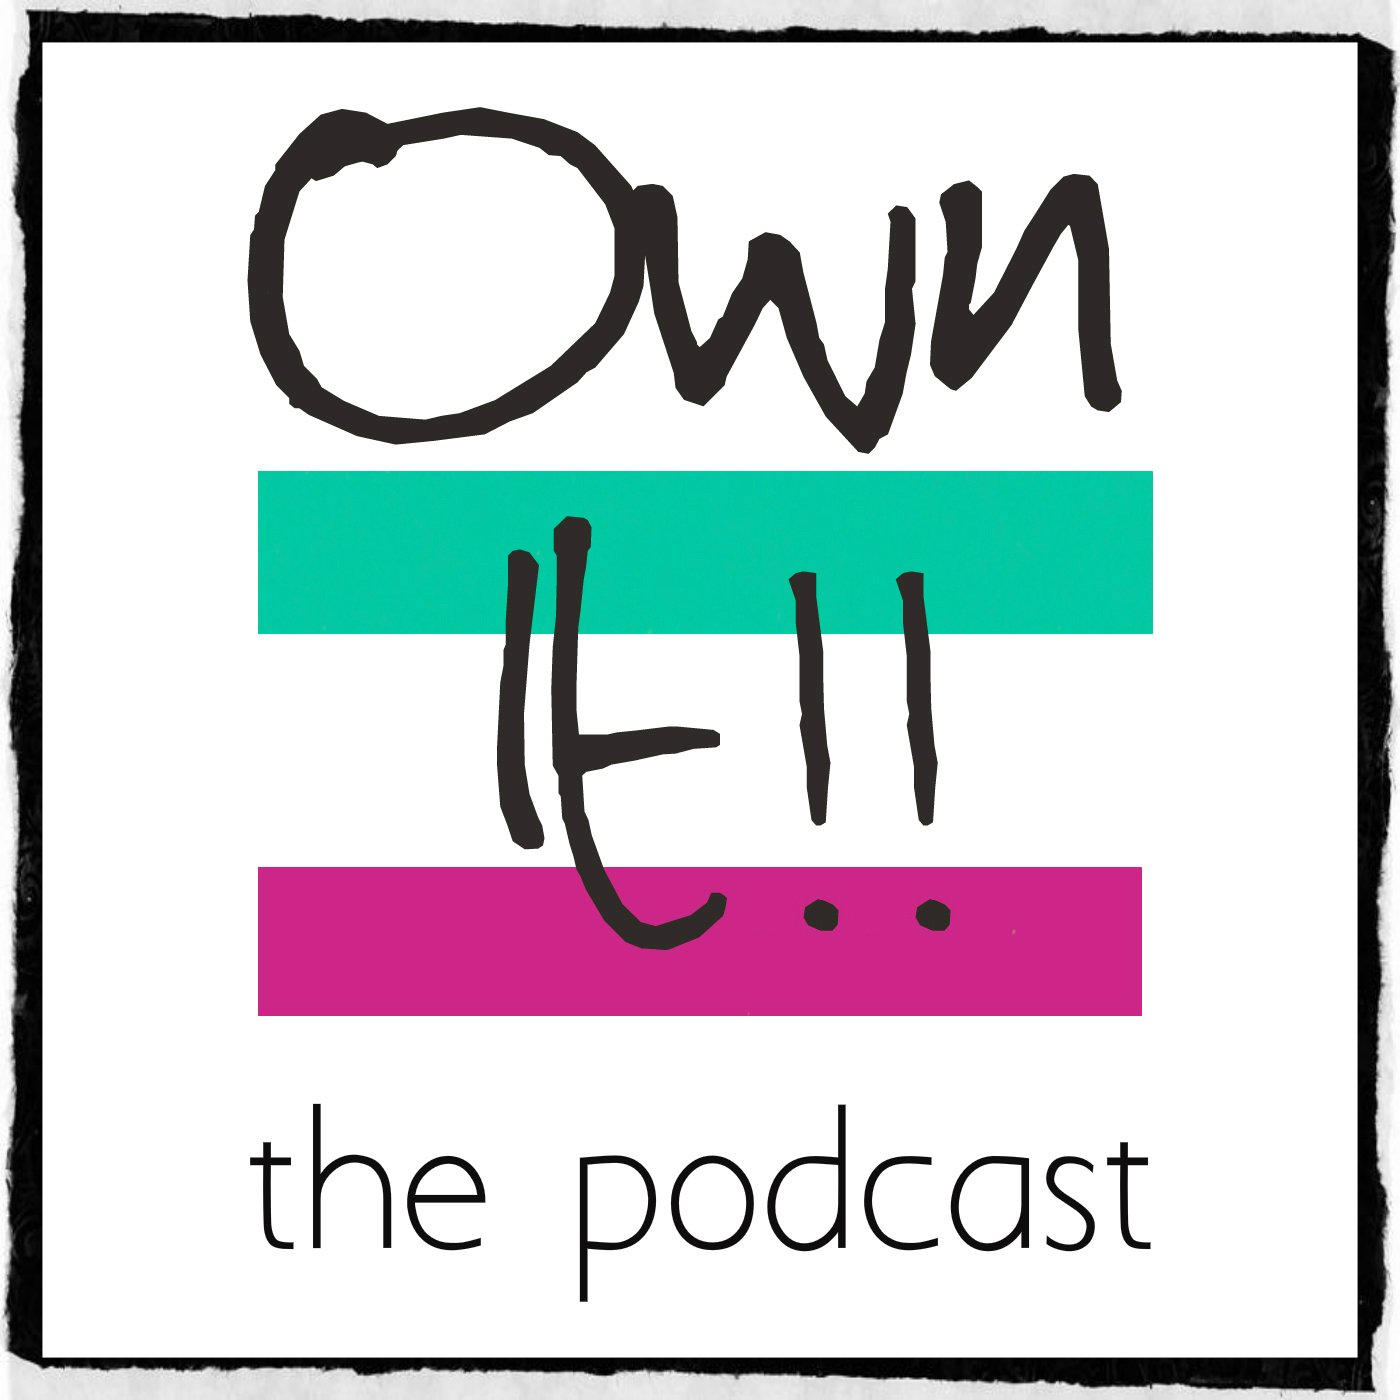 Own It! The Podcast